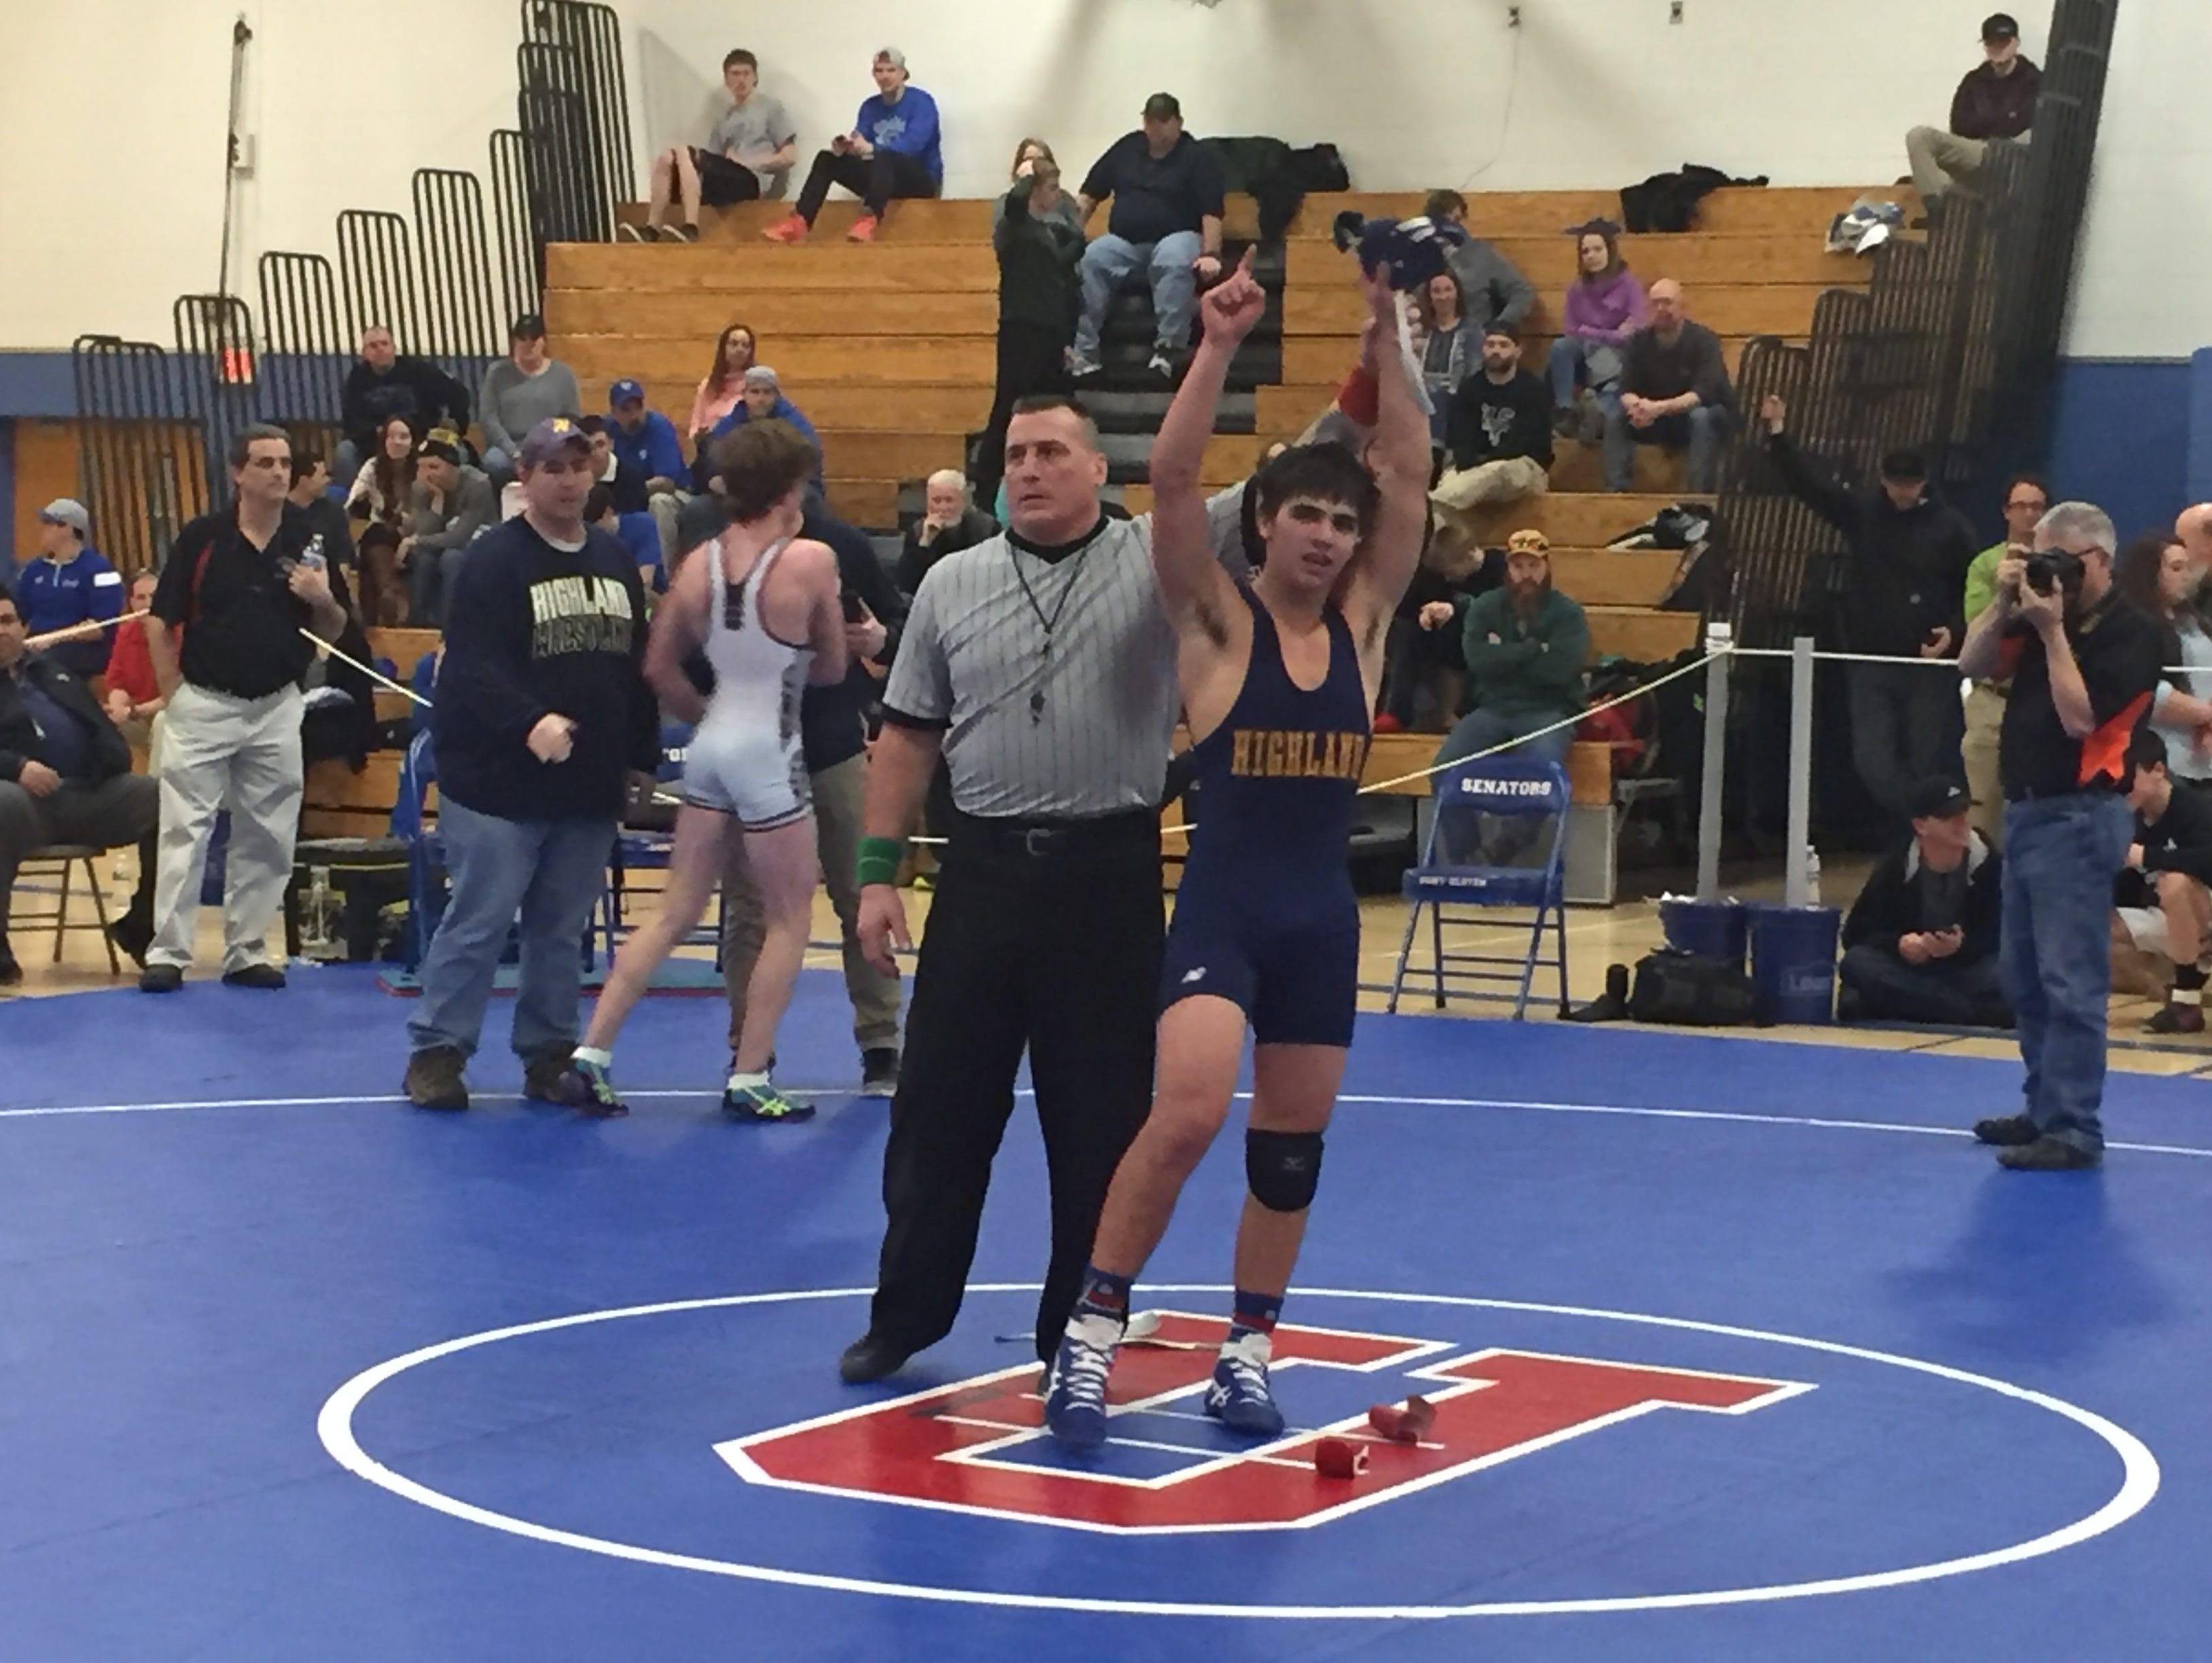 Highland's Matt Malheiro captured a Section 9 Division II wrestling title Monday at SUNY Ulster. He was one of 12 area wrestlers who competed.